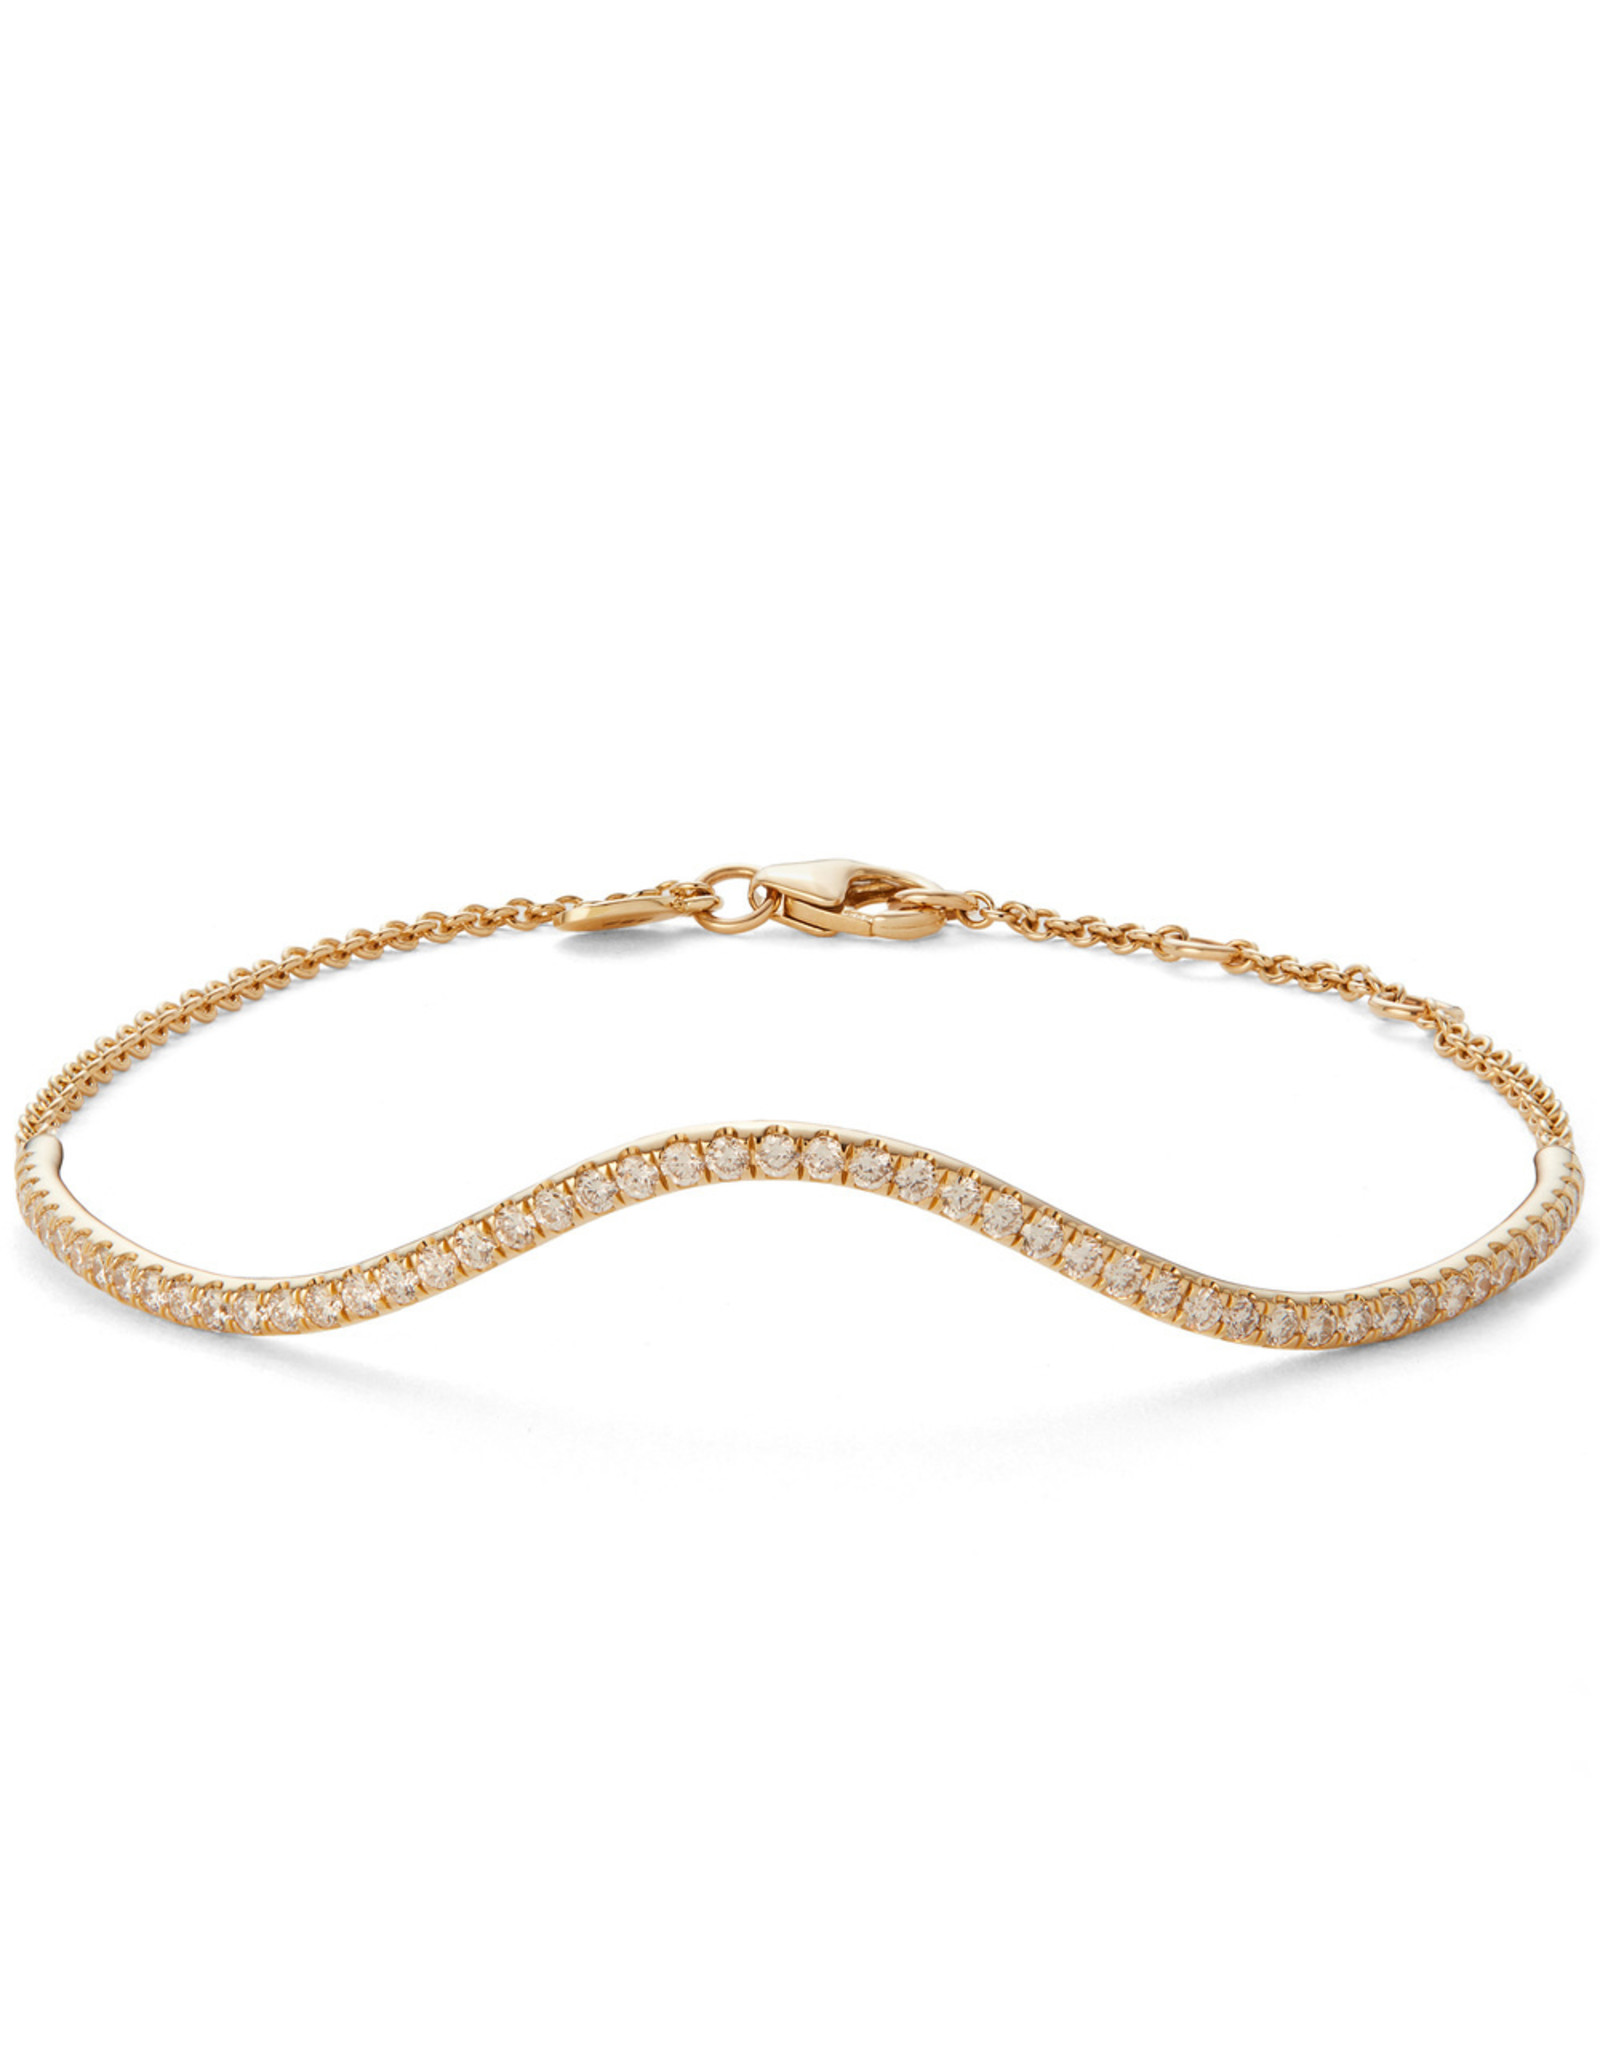 Bondeye Jewelry Bondeye Wave Bracelet (Color: Yellow Gold)